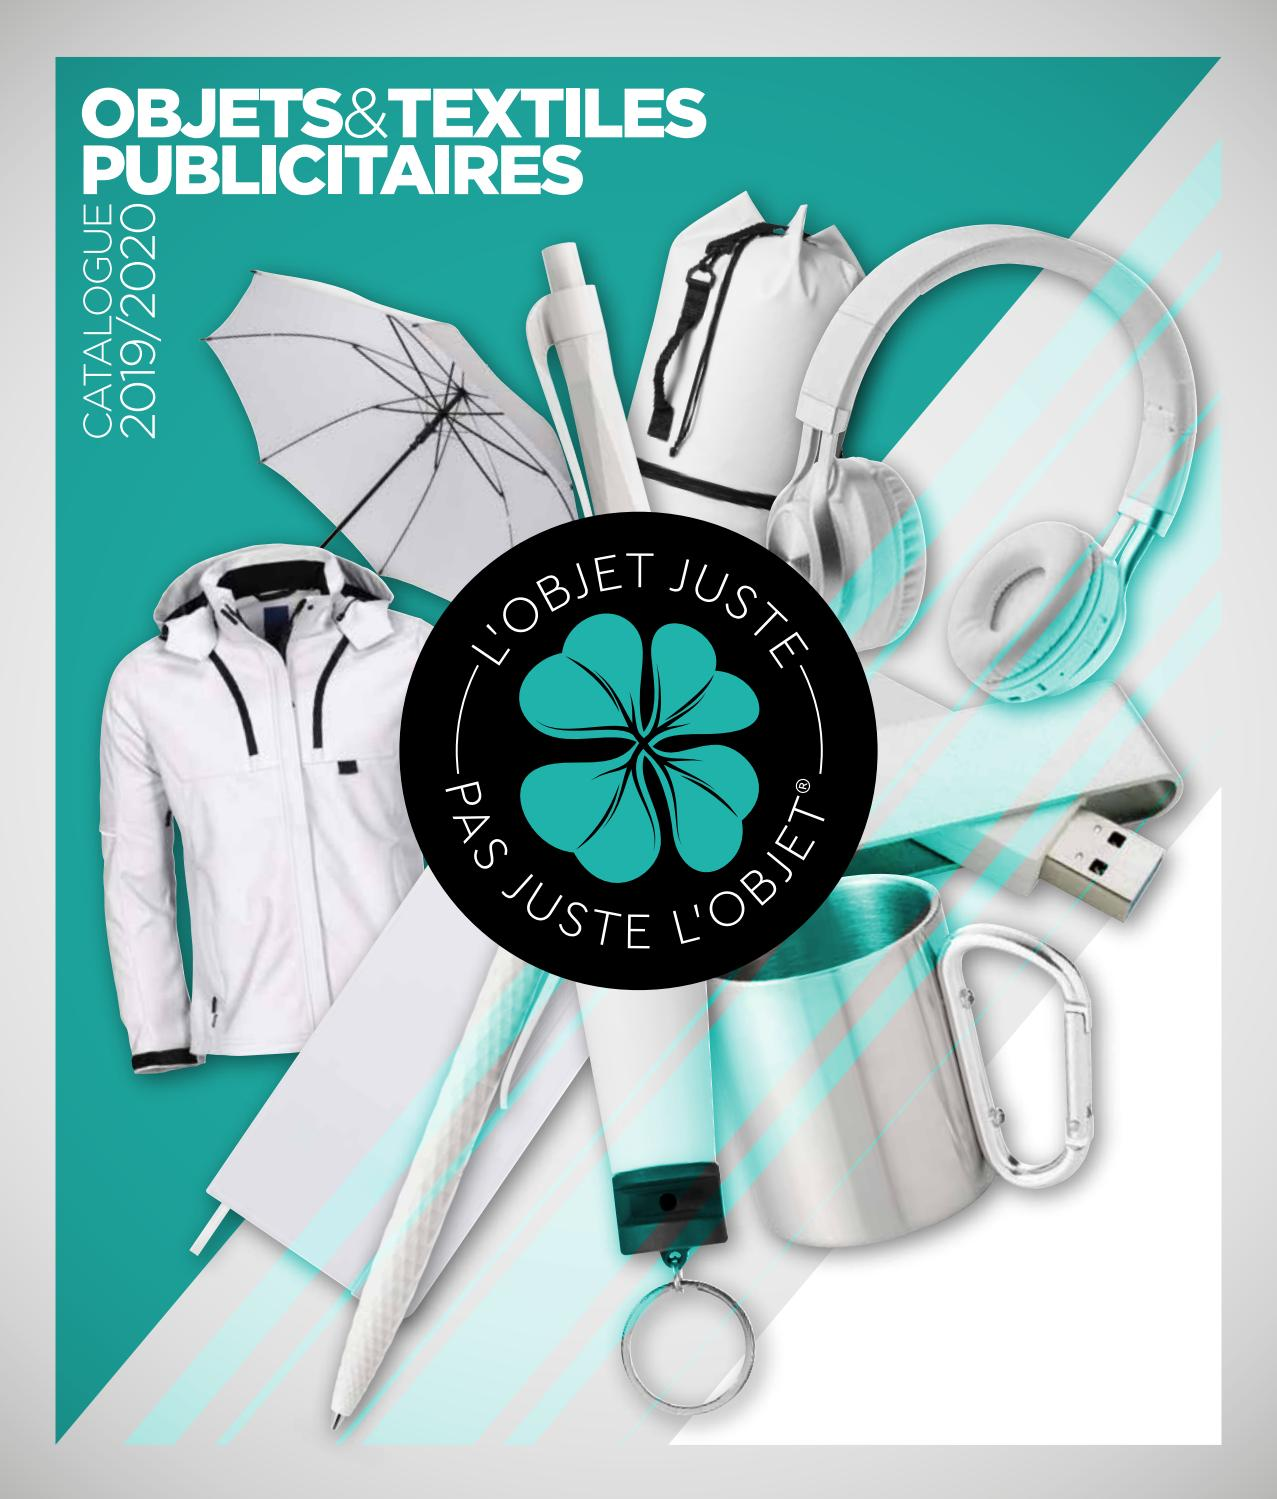 Issuu Og10 By Goodies Full Objectif Groupe Ace vwmOy0N8n